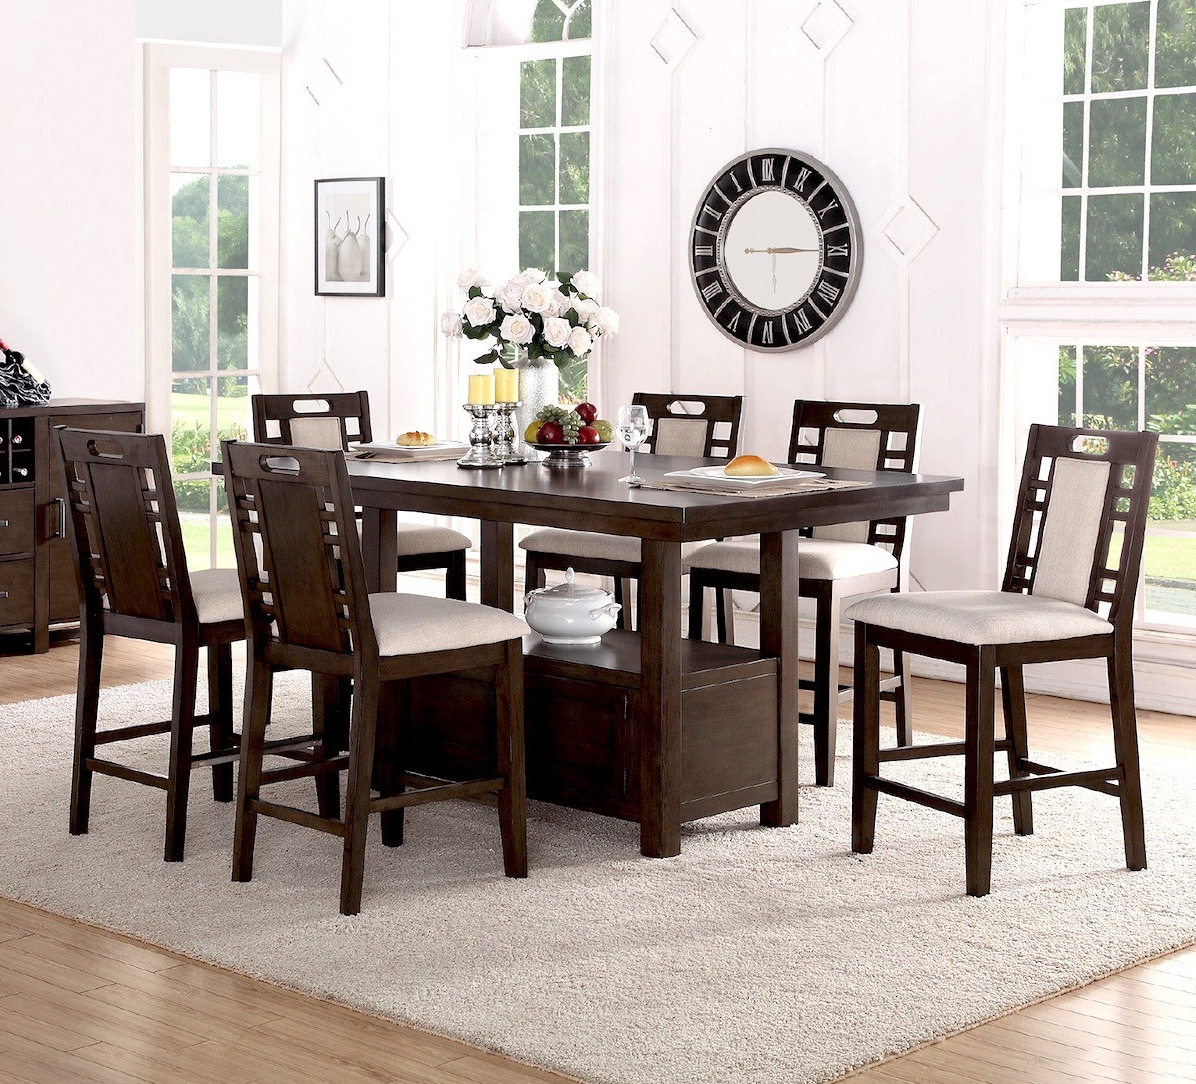 Most Popular Parquet 7 Piece Dining Sets Pertaining To Winston Porter Nika 7 Piece Counter Height Dining Set & Reviews (View 2 of 25)